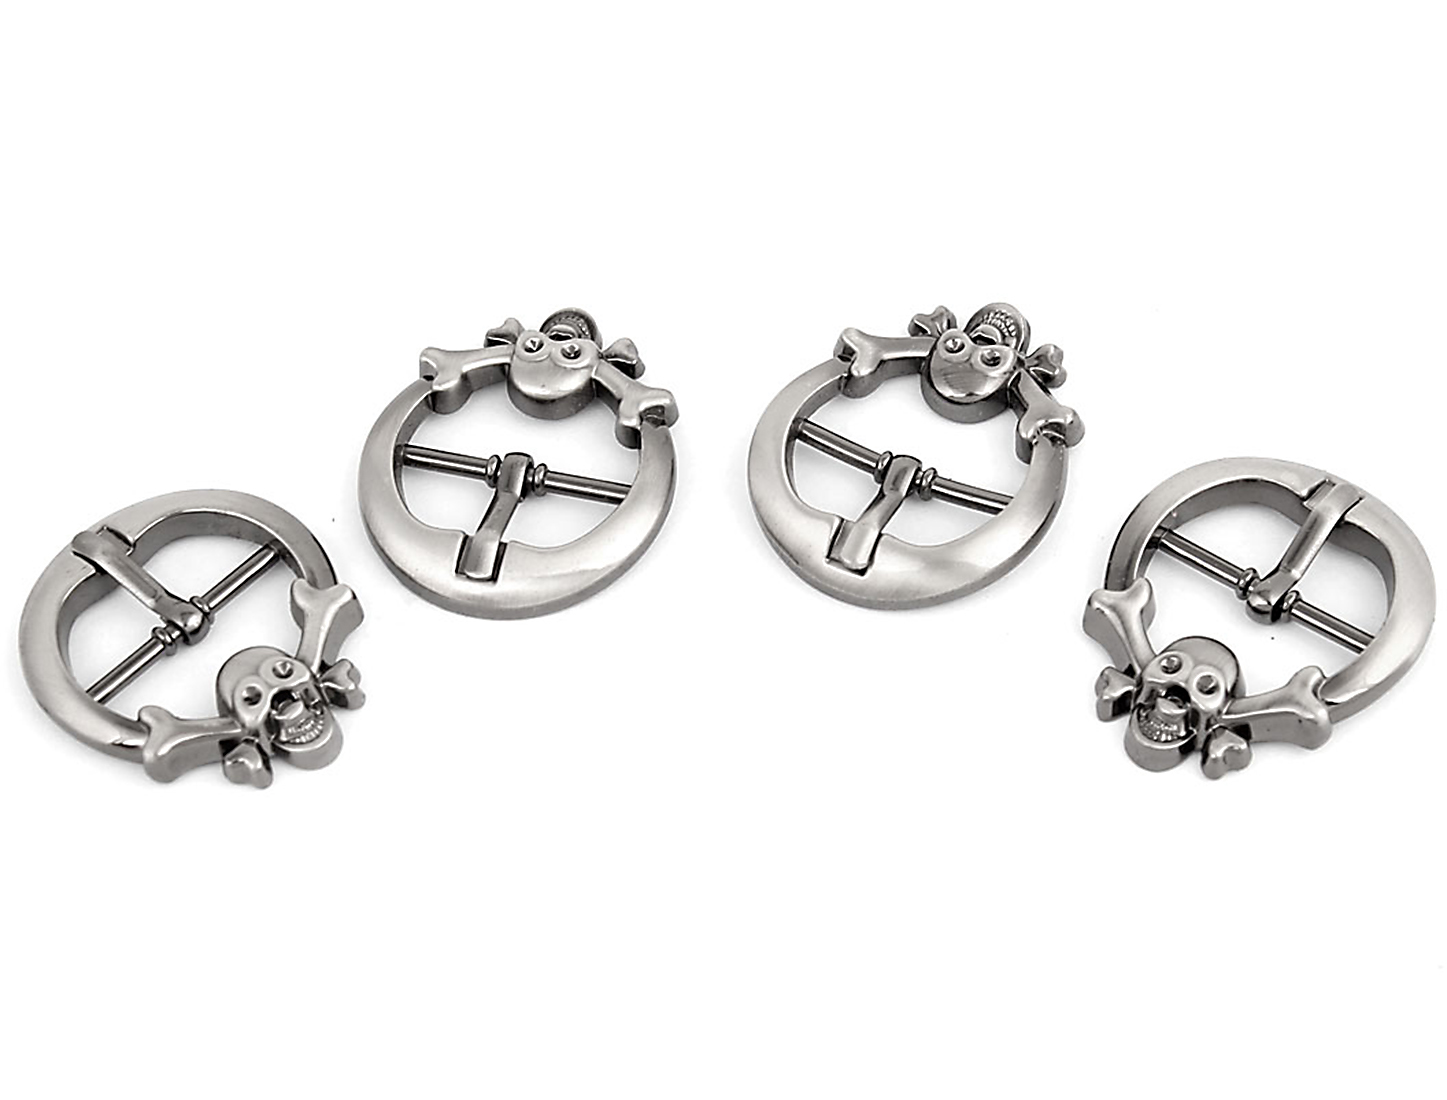 4 Pcs Silver Gray Metal Skull Decor Round Belt Single Pin Buckle